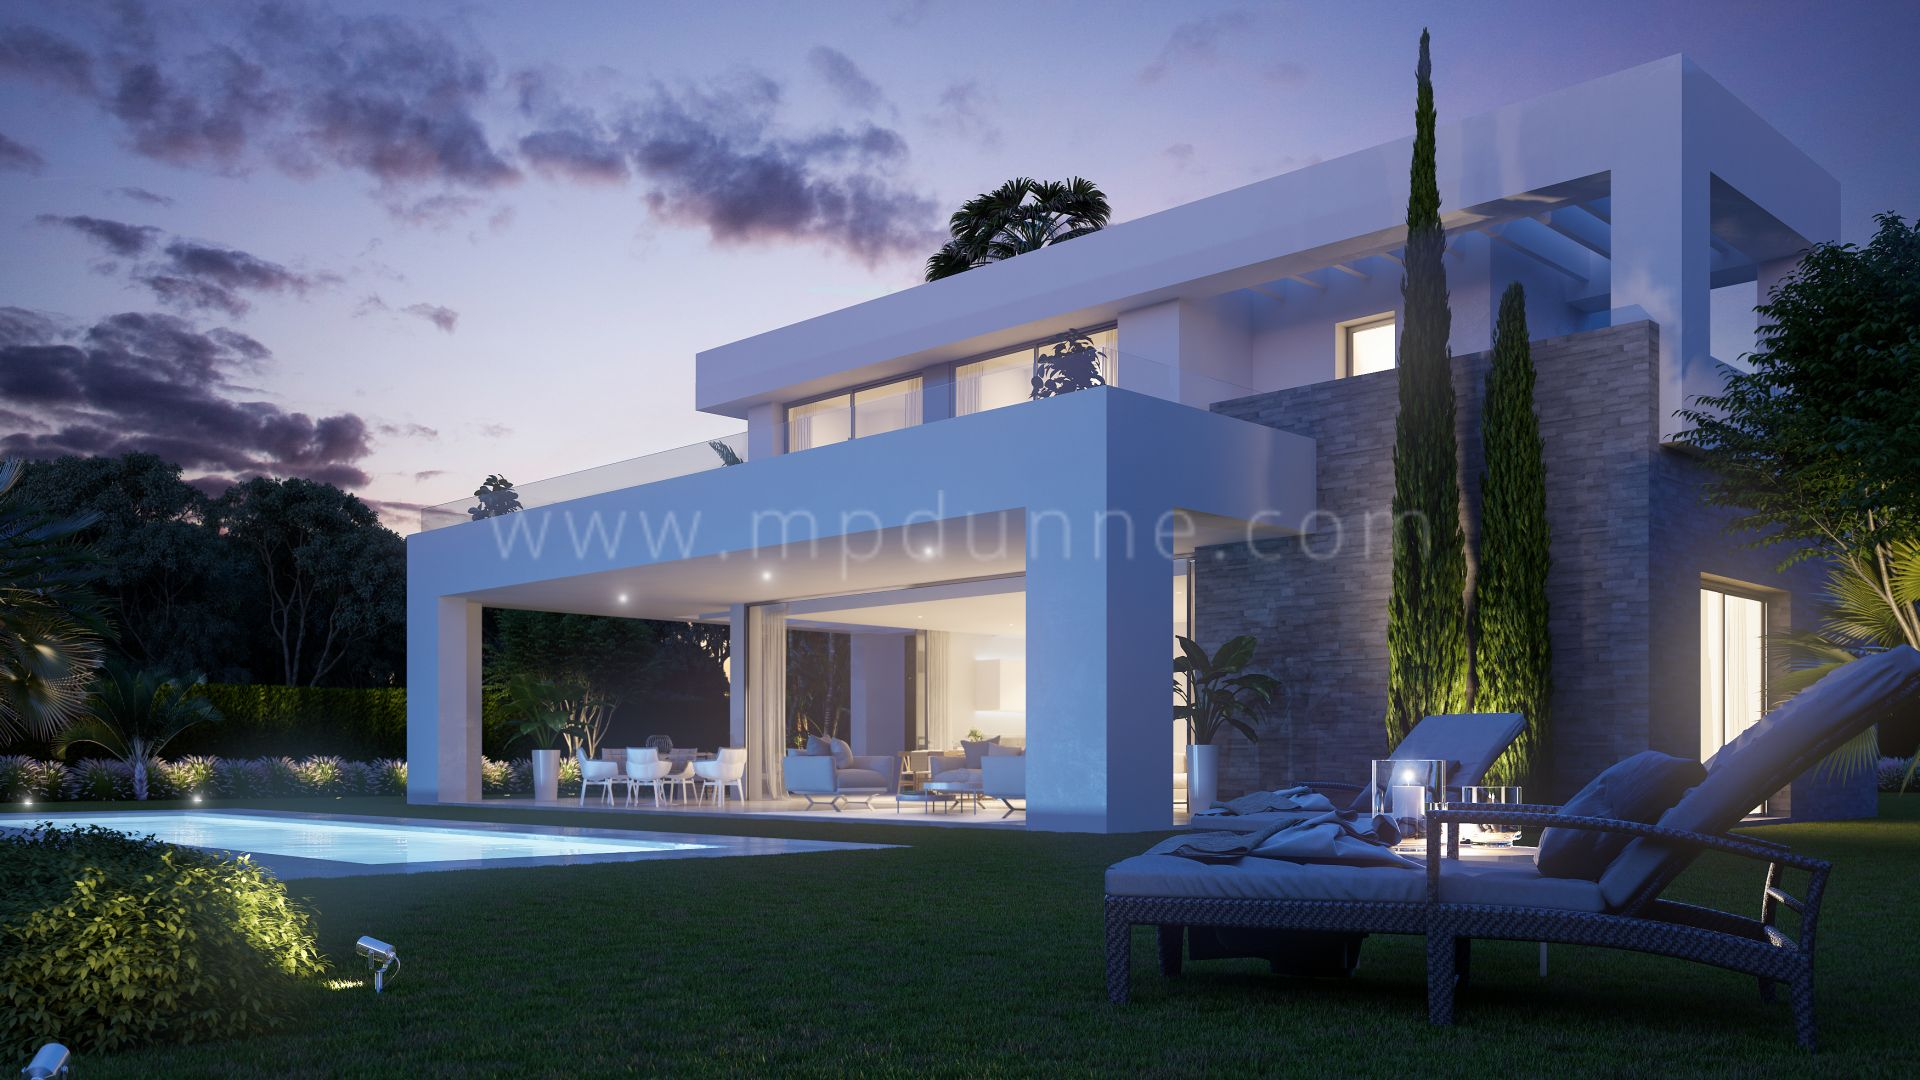 Development in La Cala Golf, Mijas Costa